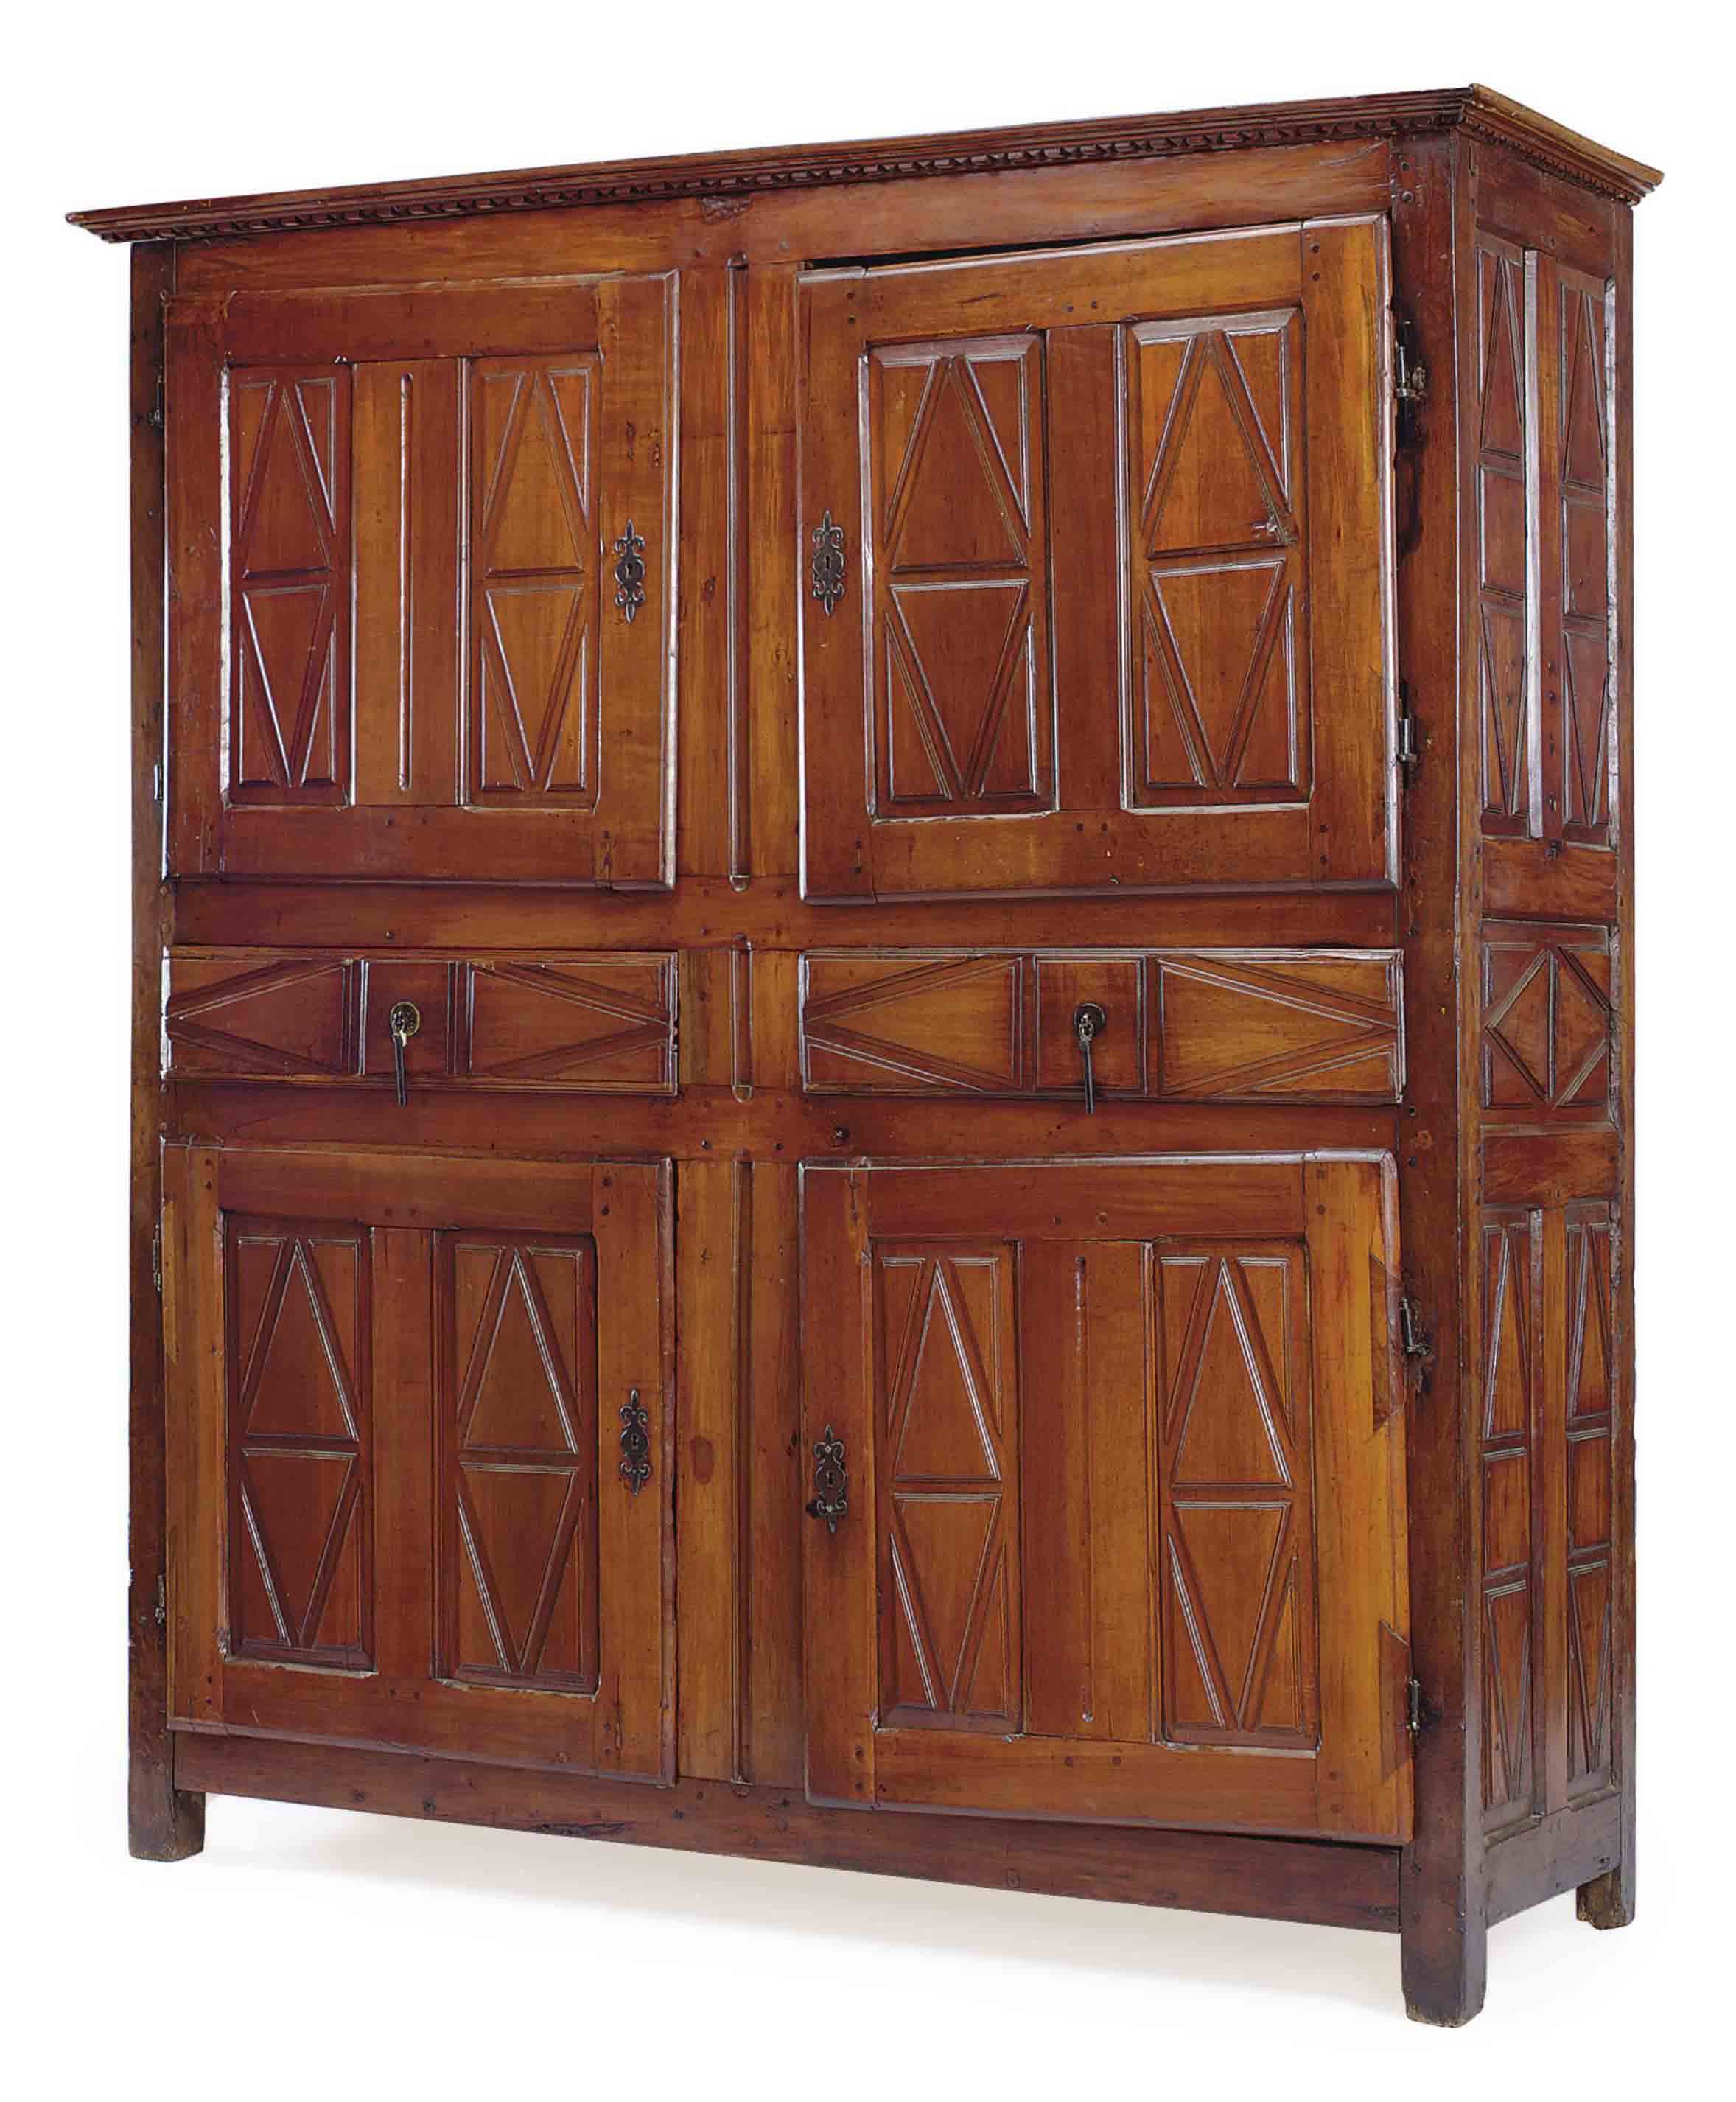 A FRENCH PROVINCIAL CHERRY AND WALNUT CUPBOARD,